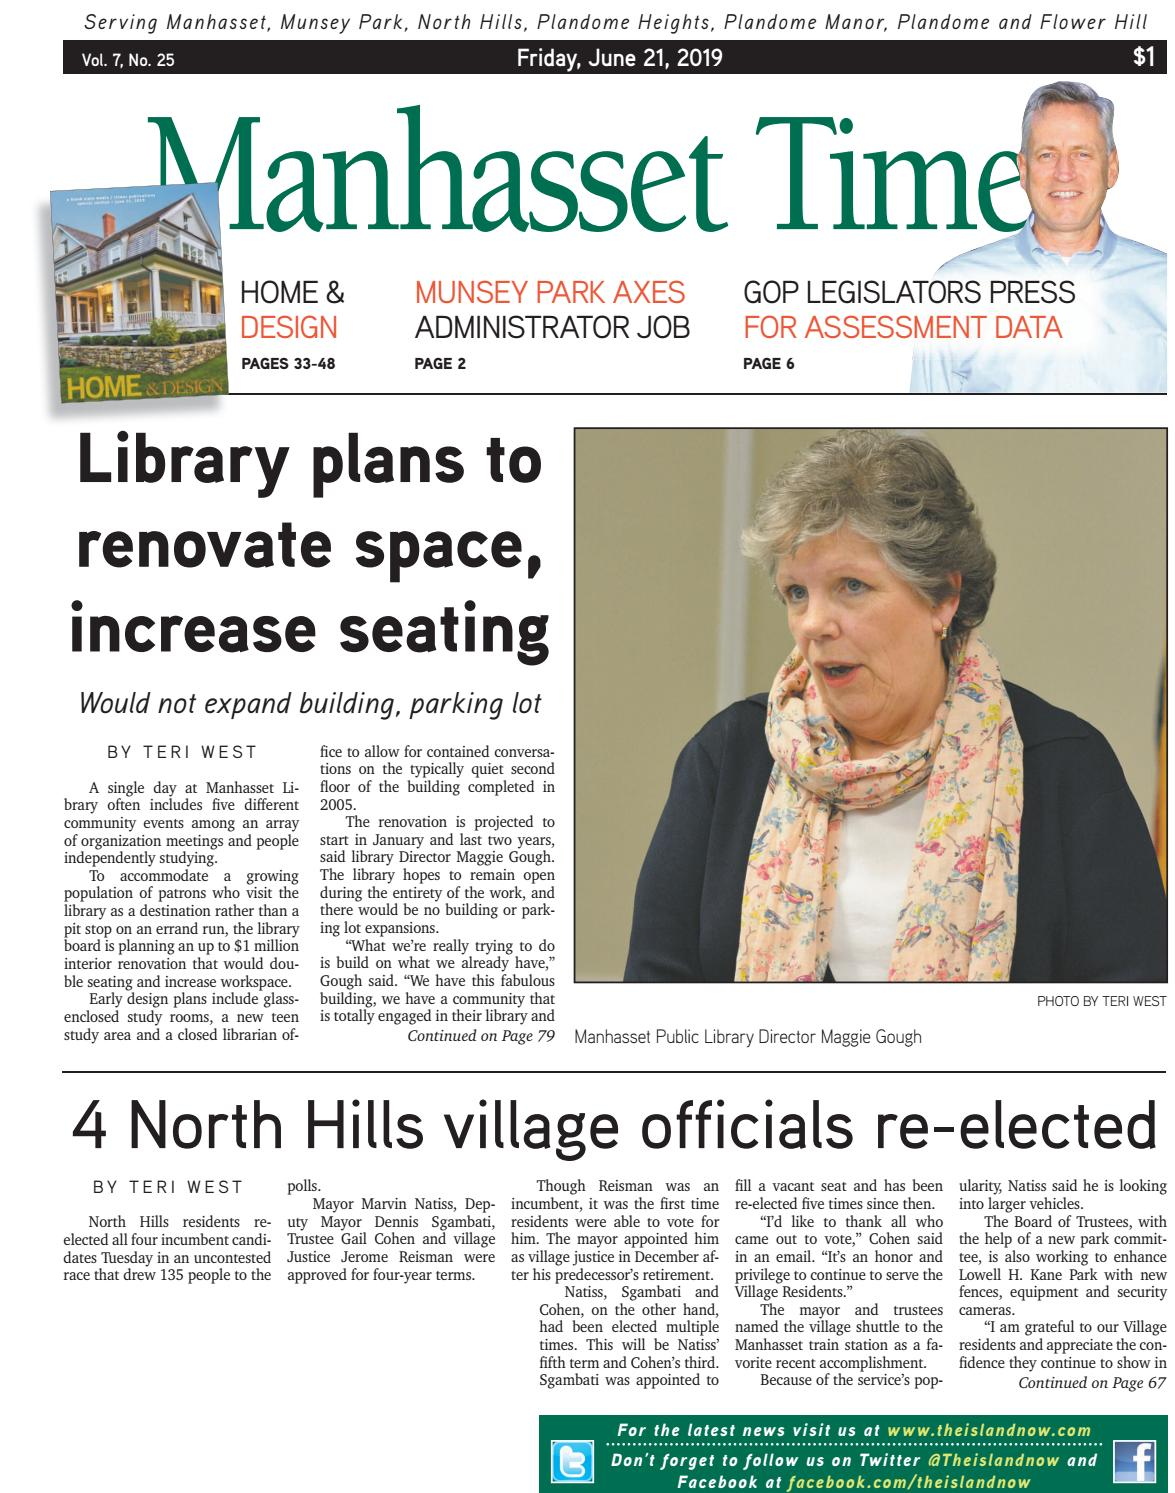 Manhasset 2019_06_21 by The Island Now - issuu